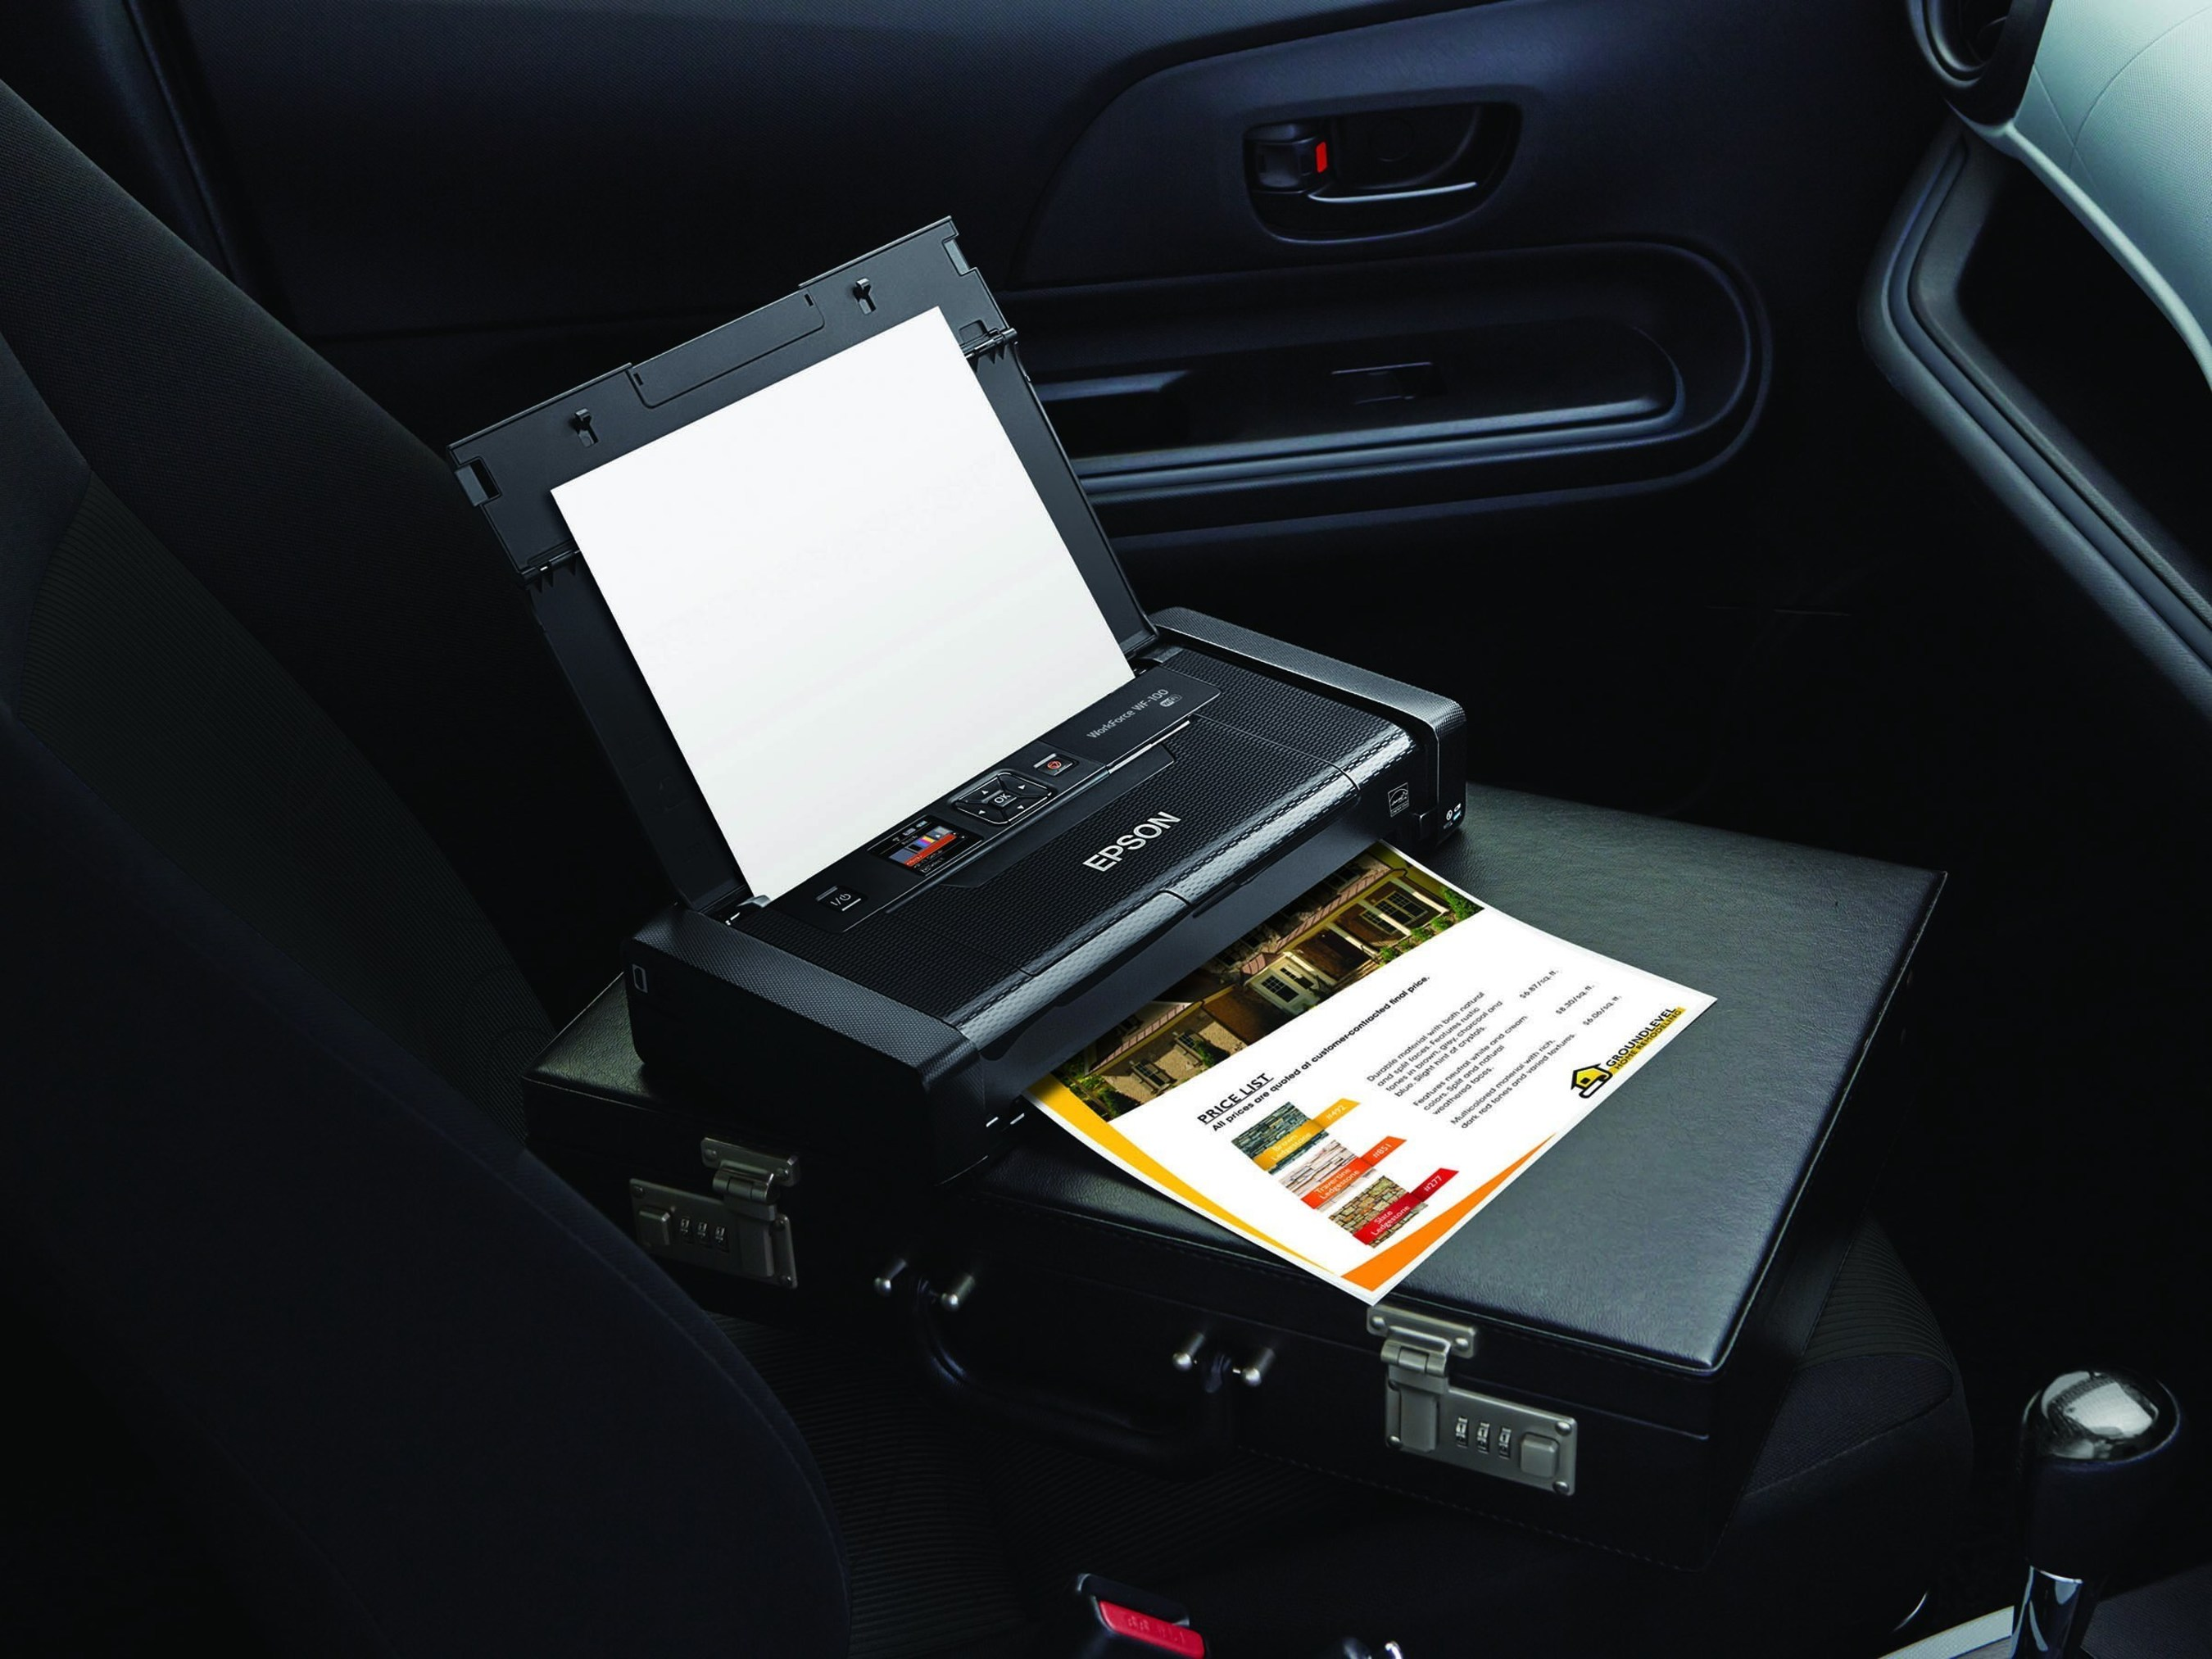 The Epson WorkForce WF-100, the world's smallest and lightest mobile printer, designed for professionals ...